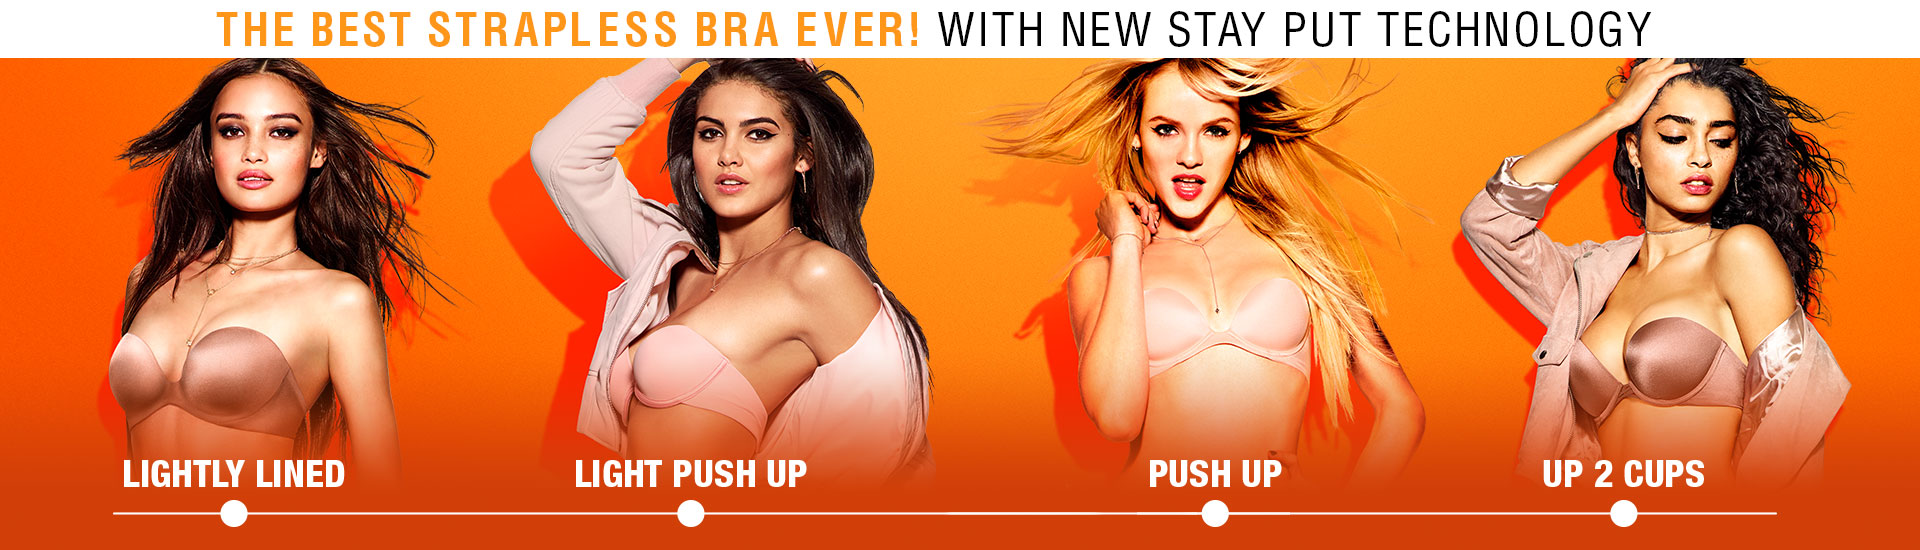 The best strapless bra ever. With all new stay put technology. Light lined. My customized. Push up. Up 2 cups.